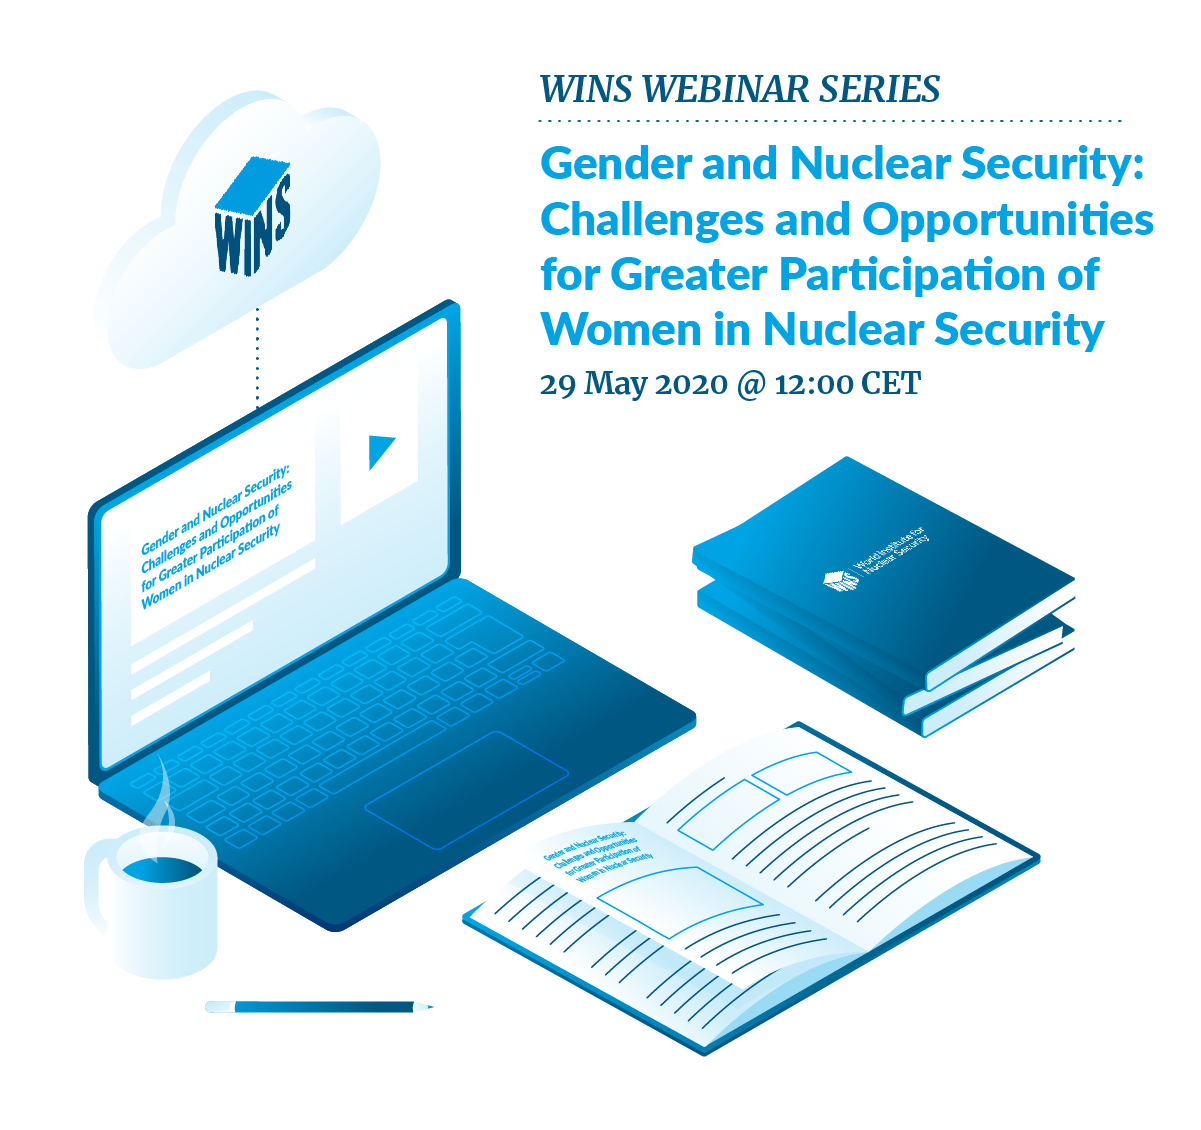 Webinar on Gender and Nuclear Security: Challenges and Opportunities for Greater Participation of Women in Nuclear Security